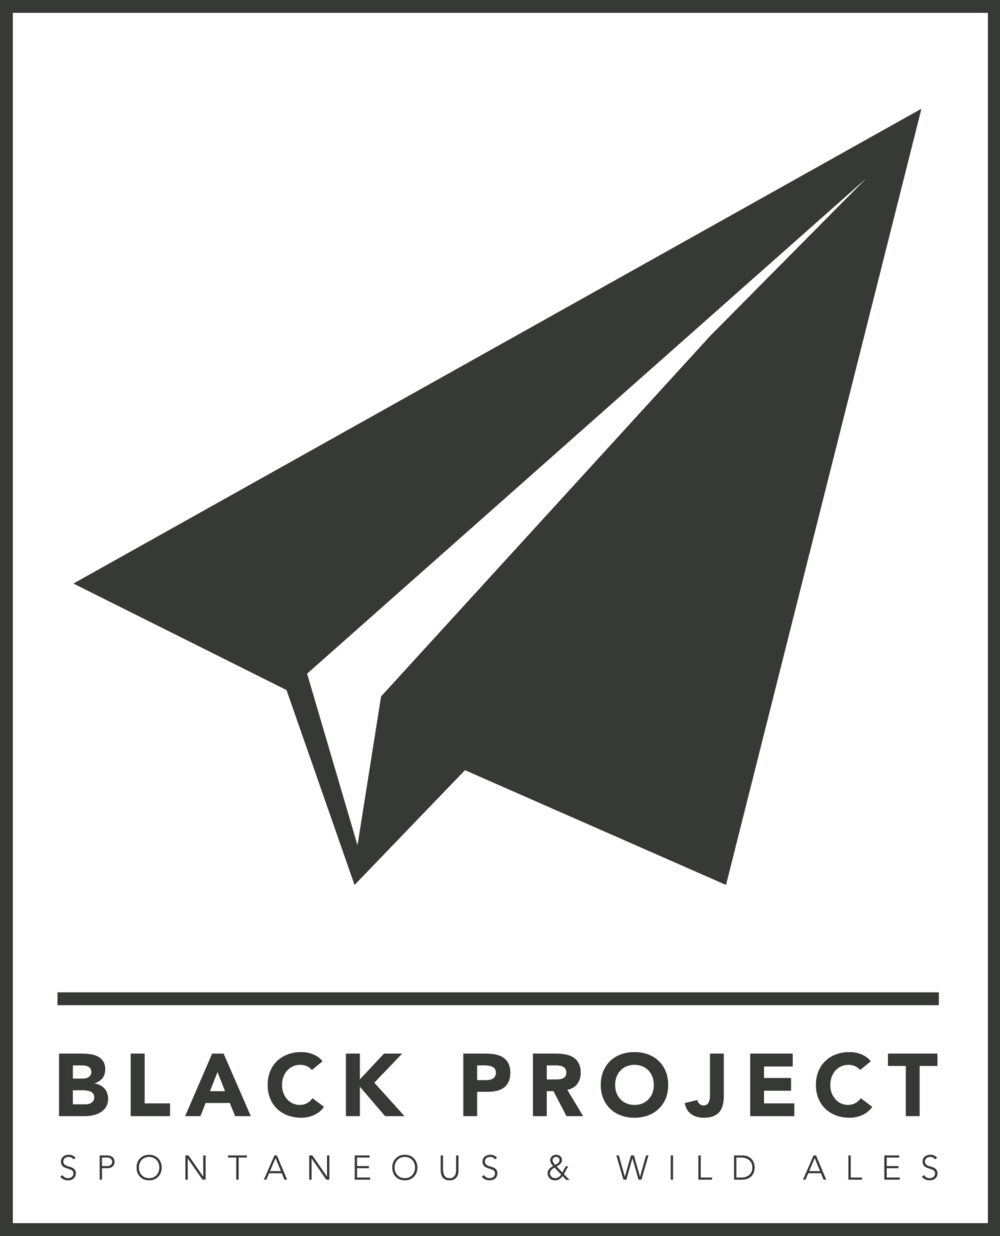 Black Project Spontaneous & Wild Ales Logo